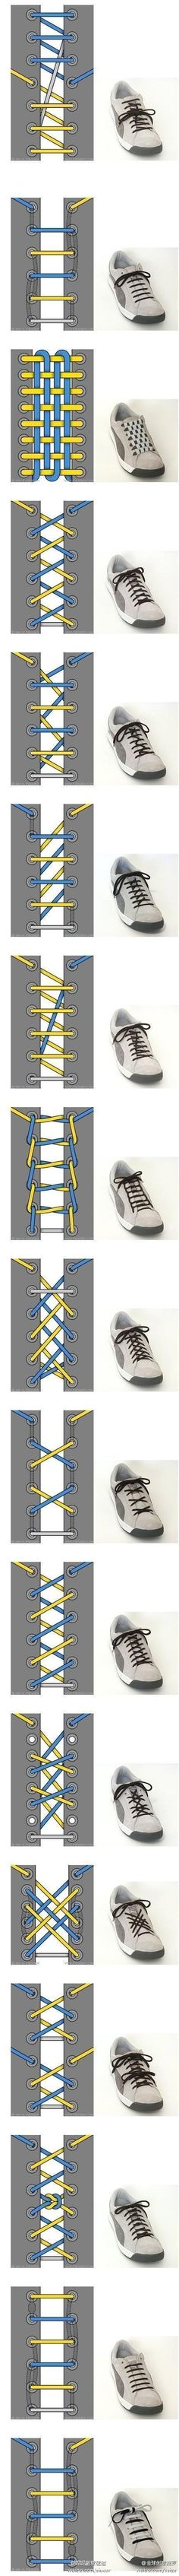 Different ways to tie shoe laces!